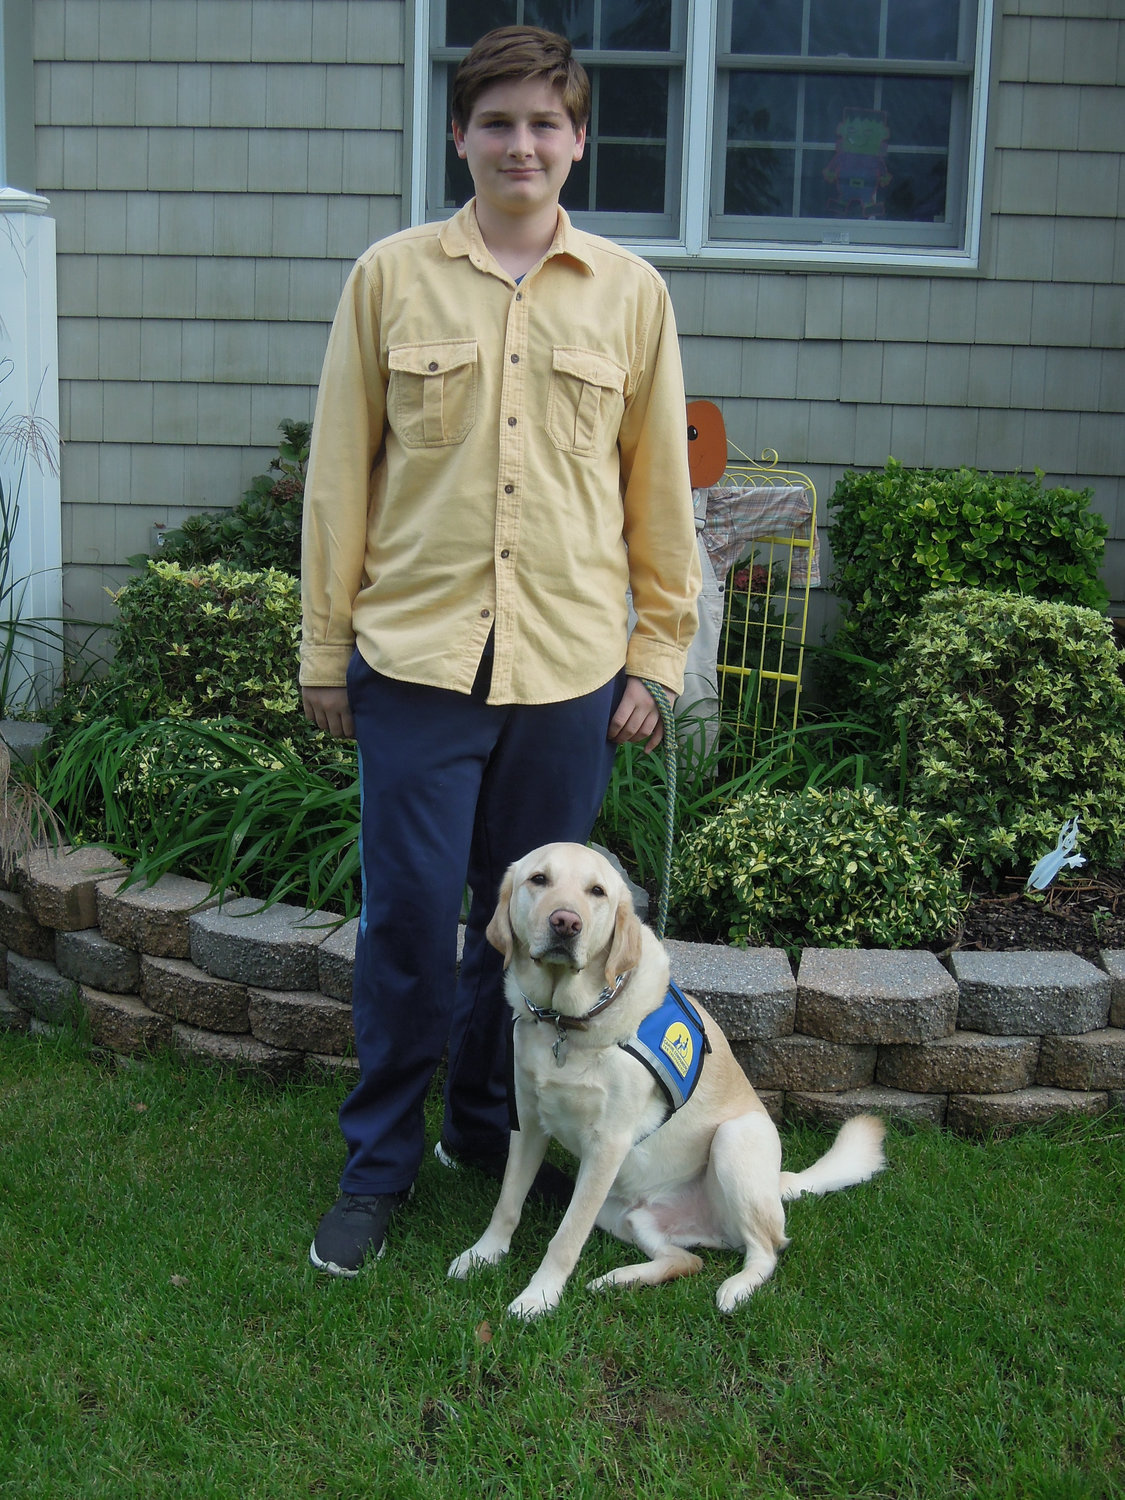 Tordy, with his service dog Draagon, raised more than $5,000 last year for Canine Companions for Independence.